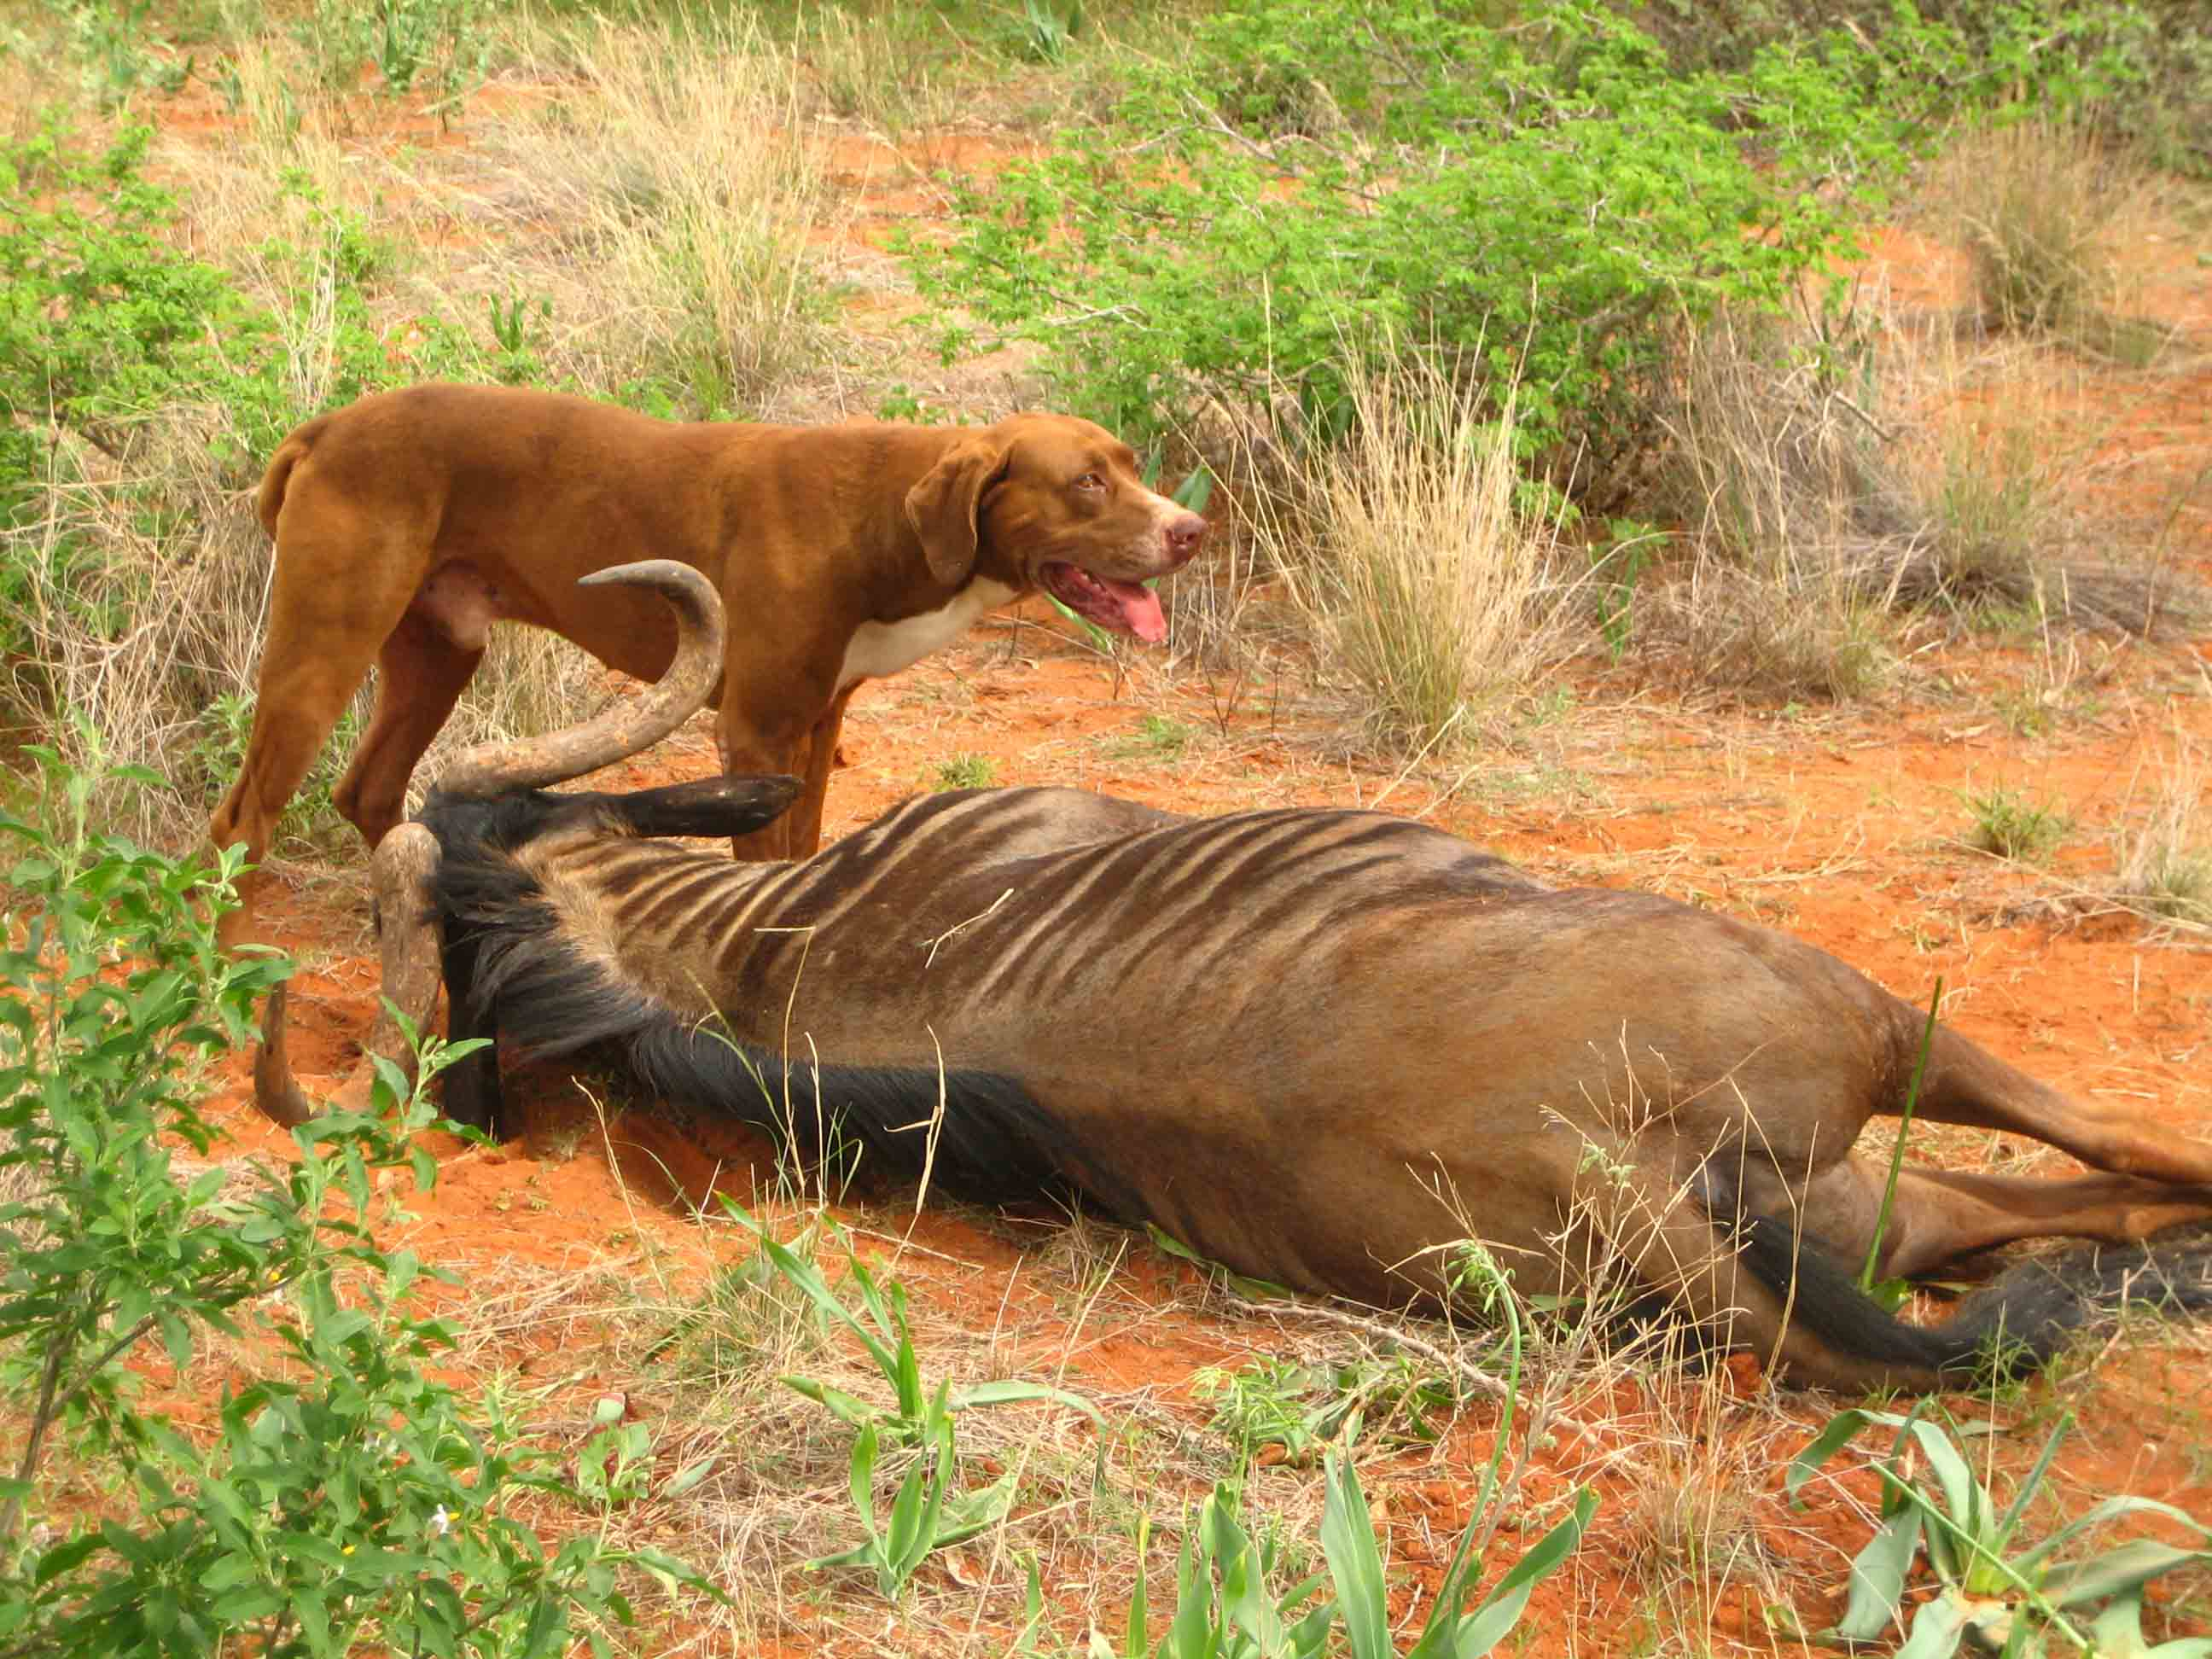 Fun Hunting Africa Lion Dogs Dogs Dreaming Lion Hunting Dog Puppy Lion Hunting Dog Video bark post Lion Hunting Dog